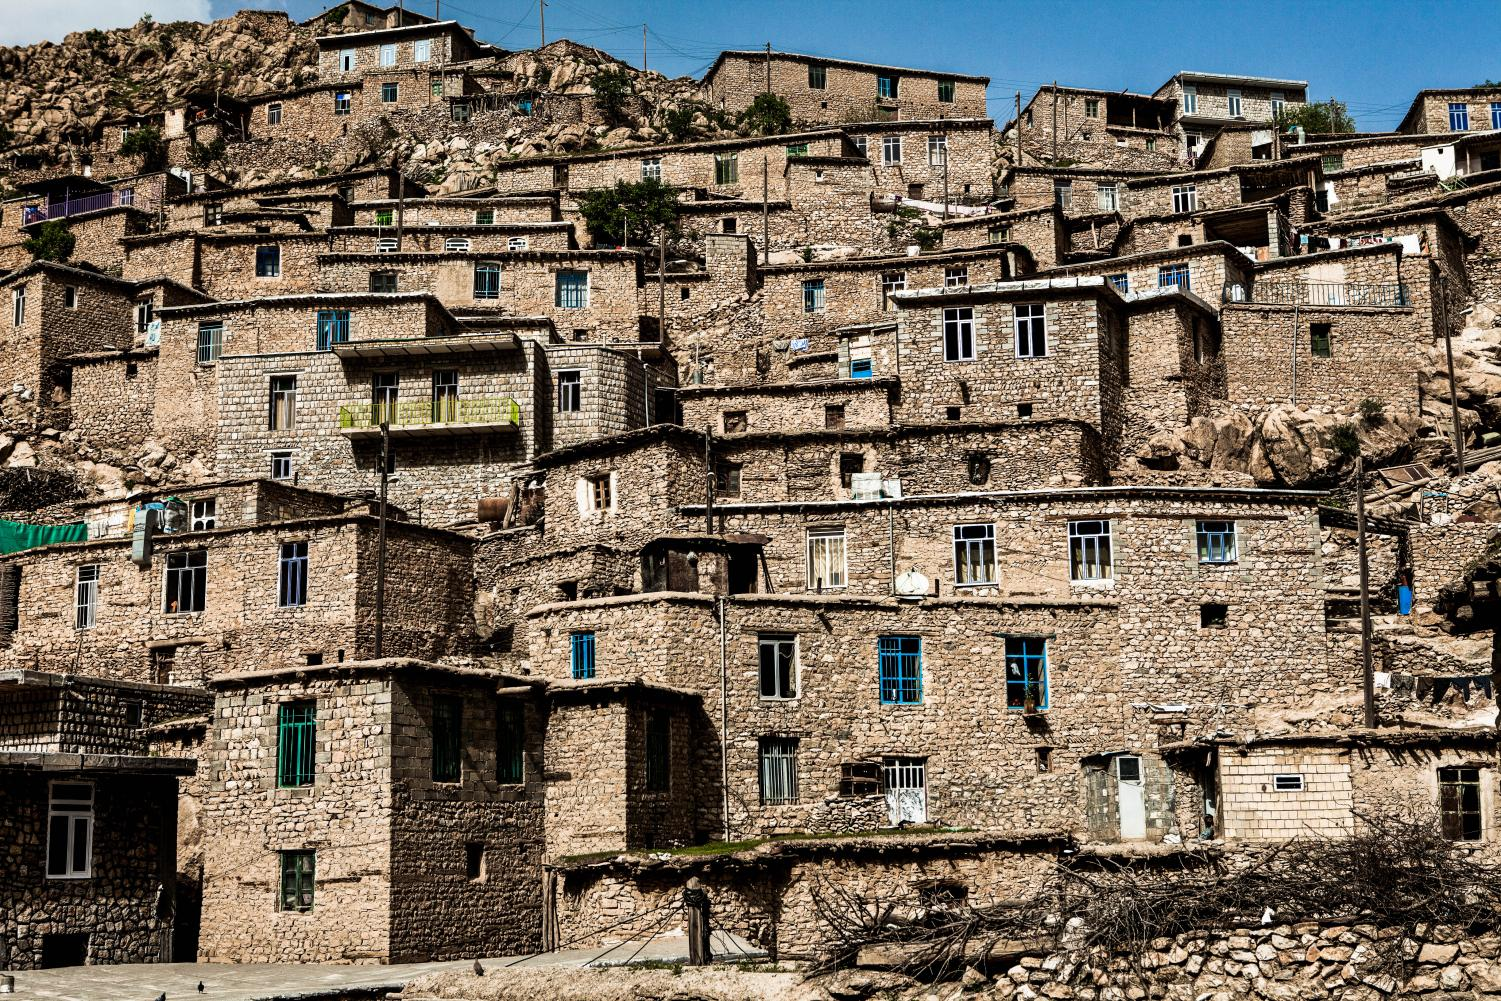 Houses stacked up on a hill in Iran before the earthquake. Photo License found at bit.ly/2hGqcPv.